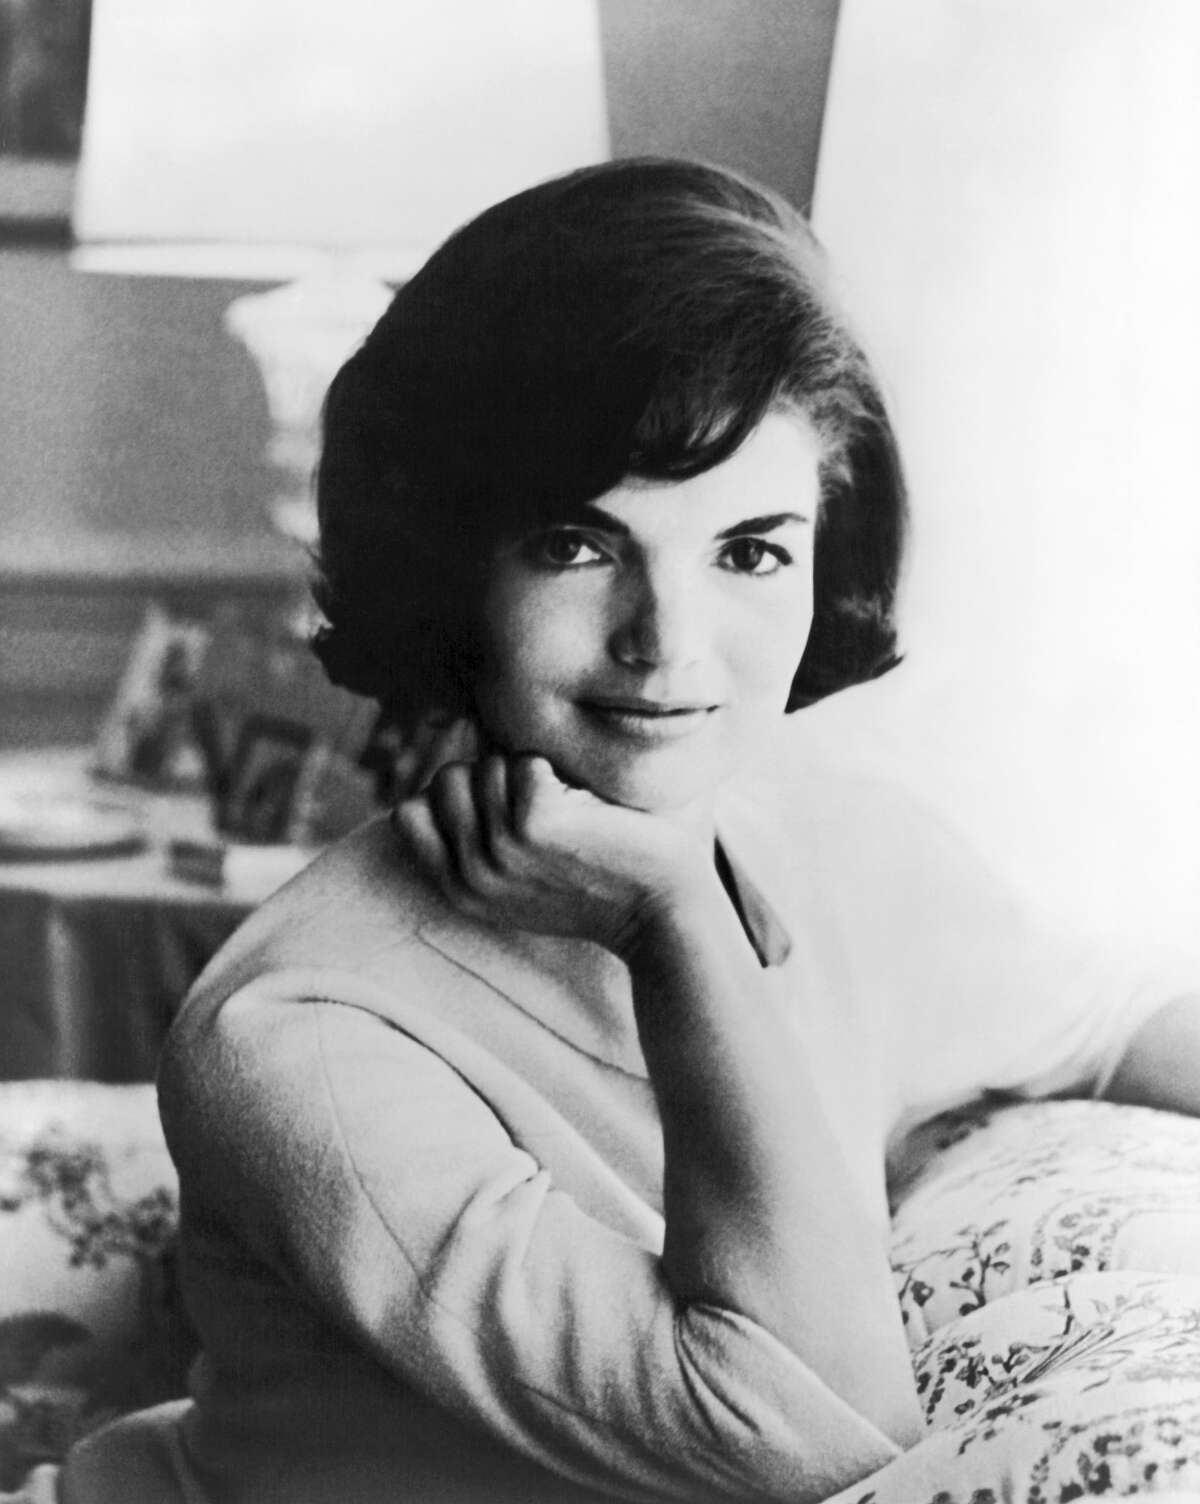 First ladies from youngest to oldest: First Lady:Jaqueline Kennedy(July 28, 1929 - May 19, 1994) President: John F. Kennedy(35th) (Jan. 20, 1961 - Nov. 22, 1963) Age atInauguration: 31 years, 5 months